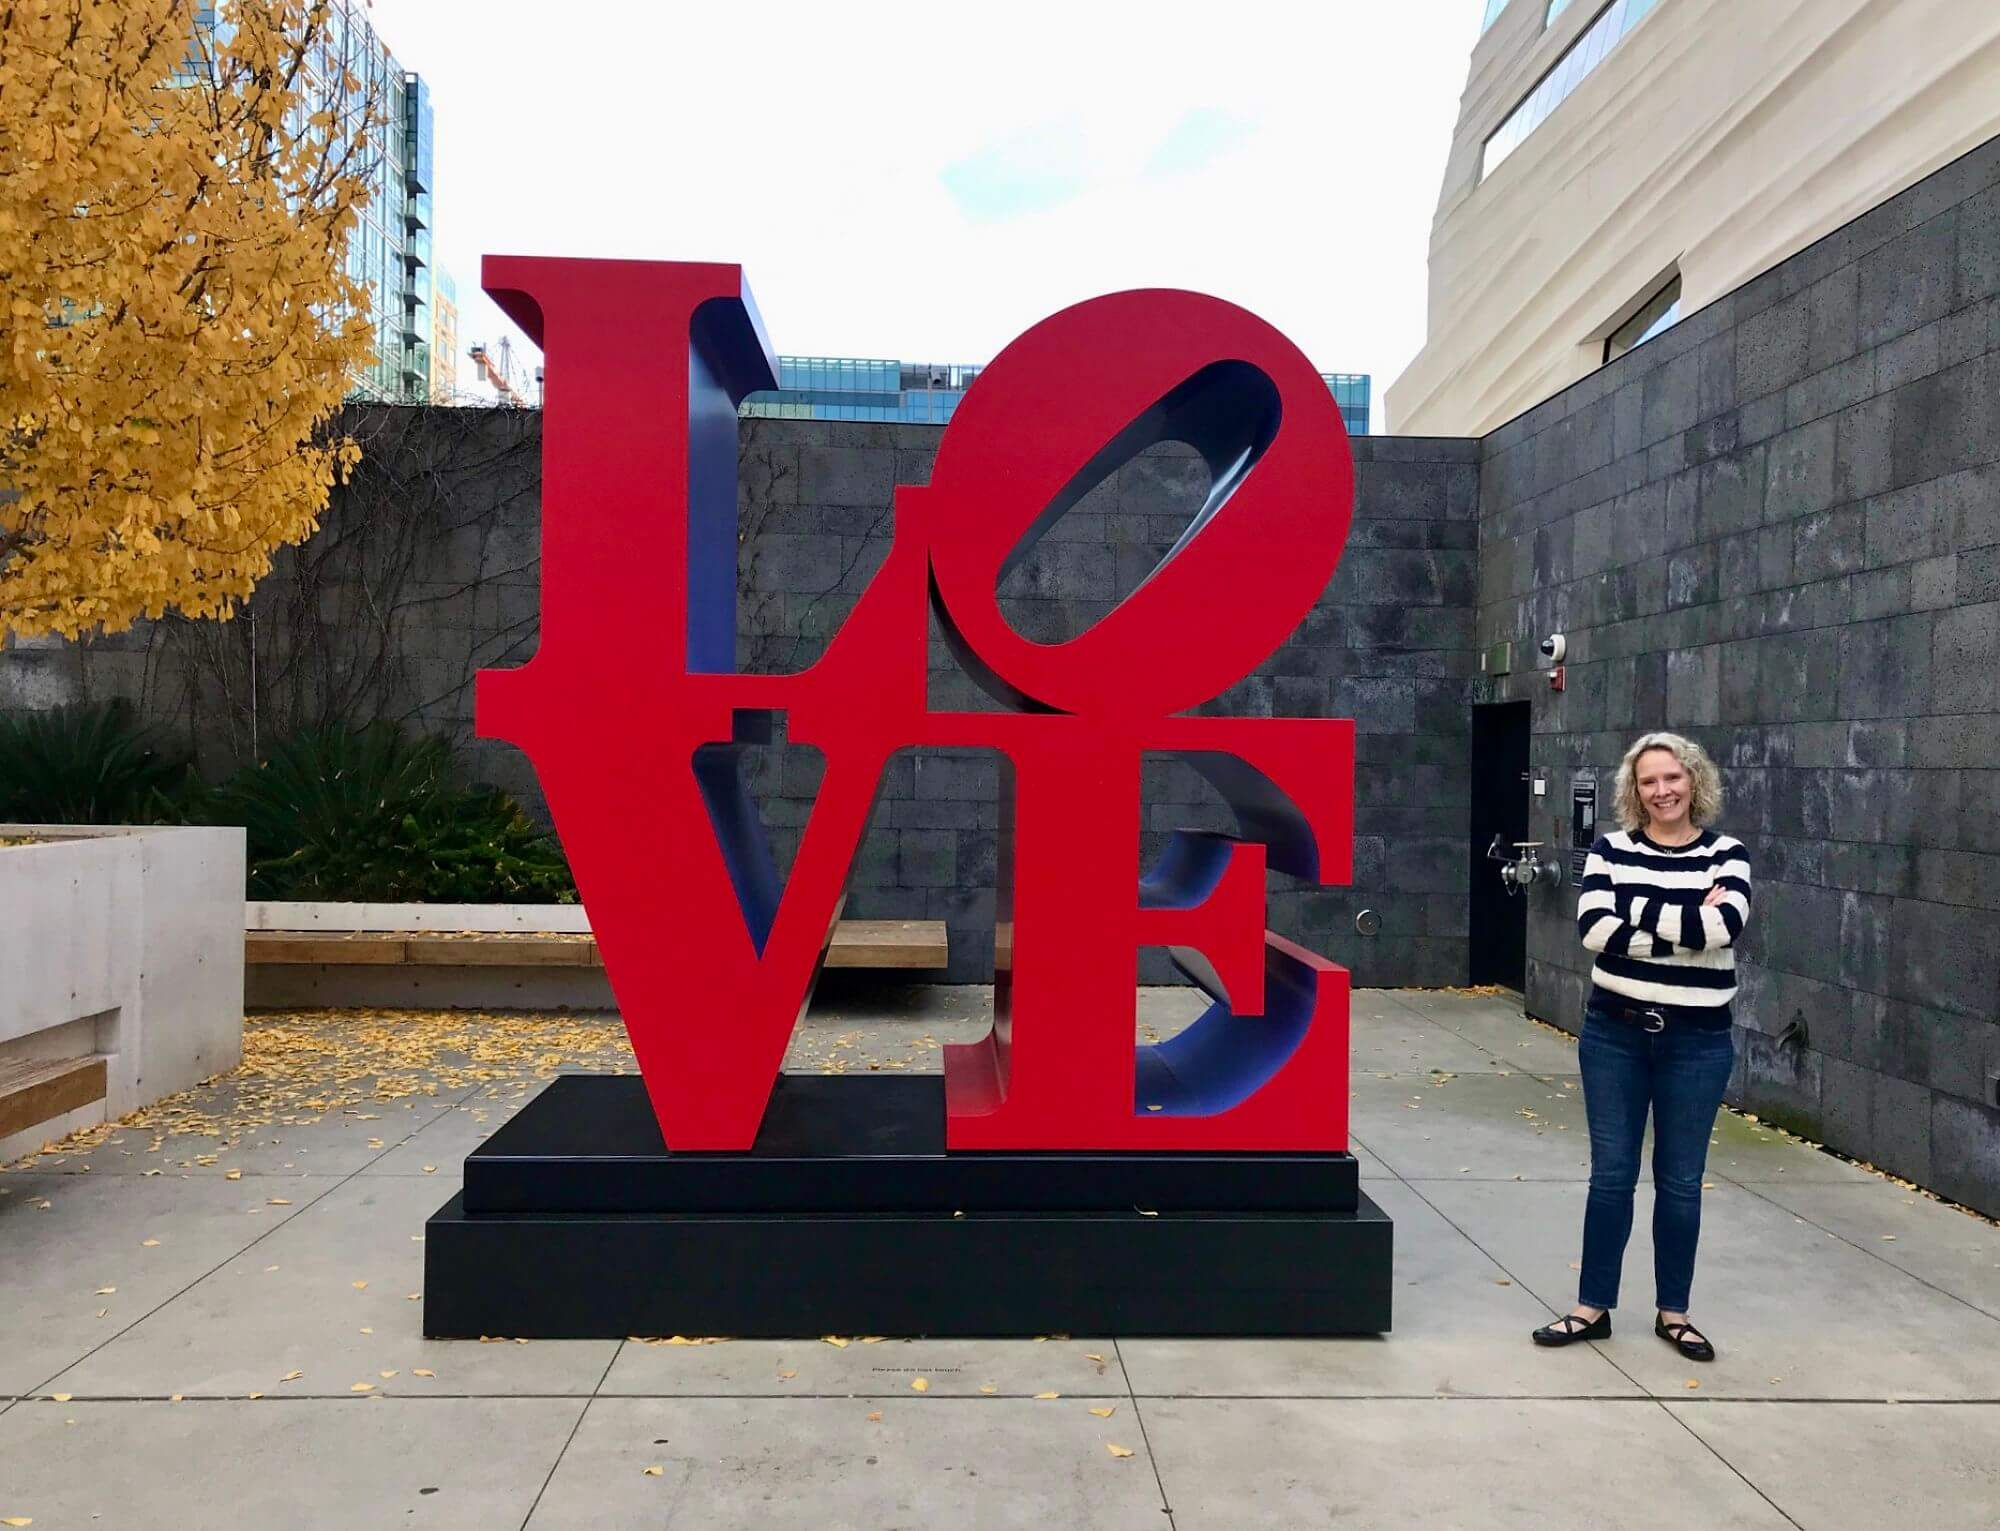 Wendy posing next to Love sculpture at SFMOMA